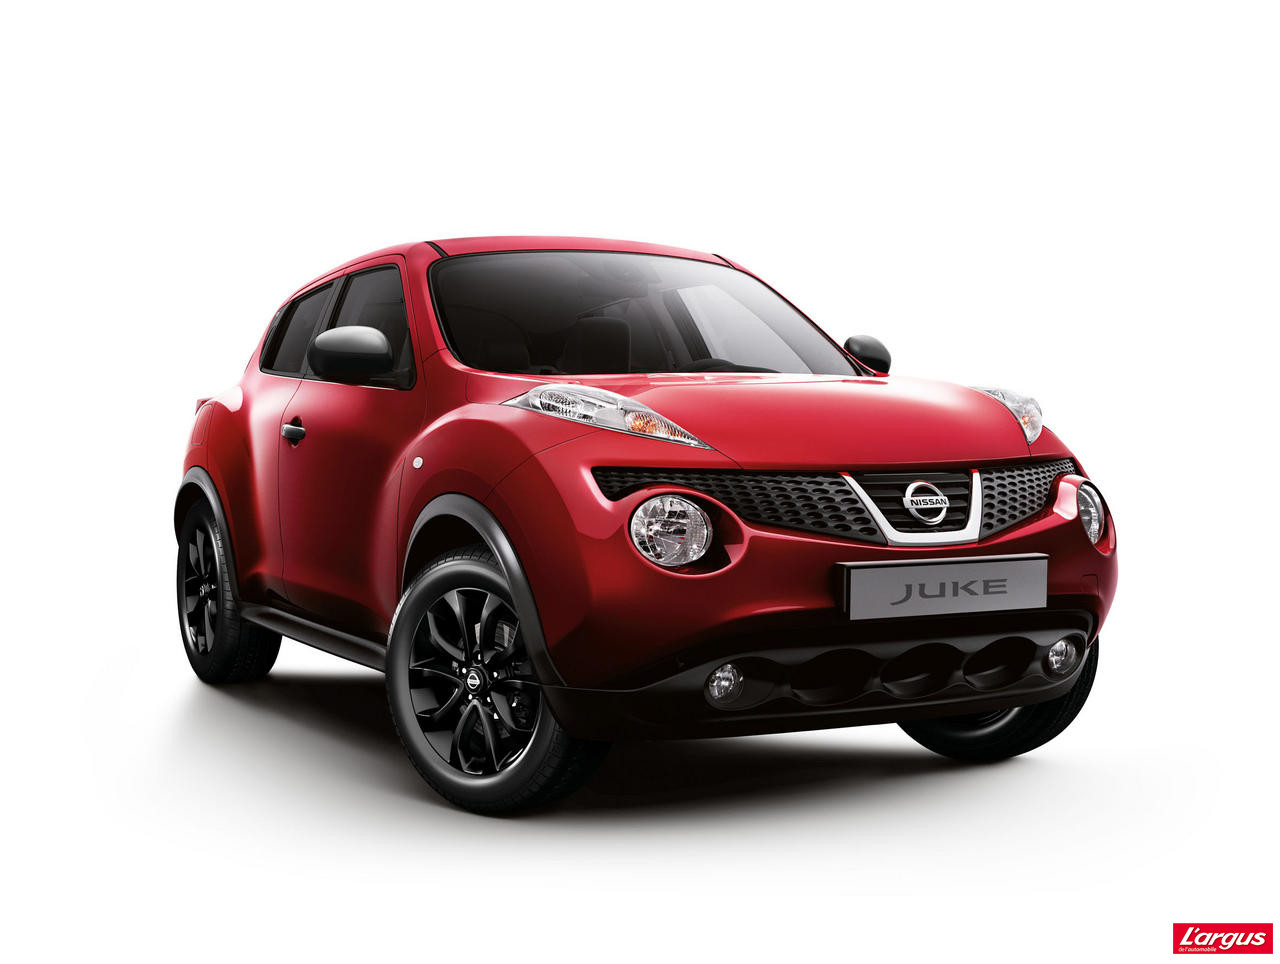 nissan juke deezer en avant la musique l 39 argus. Black Bedroom Furniture Sets. Home Design Ideas